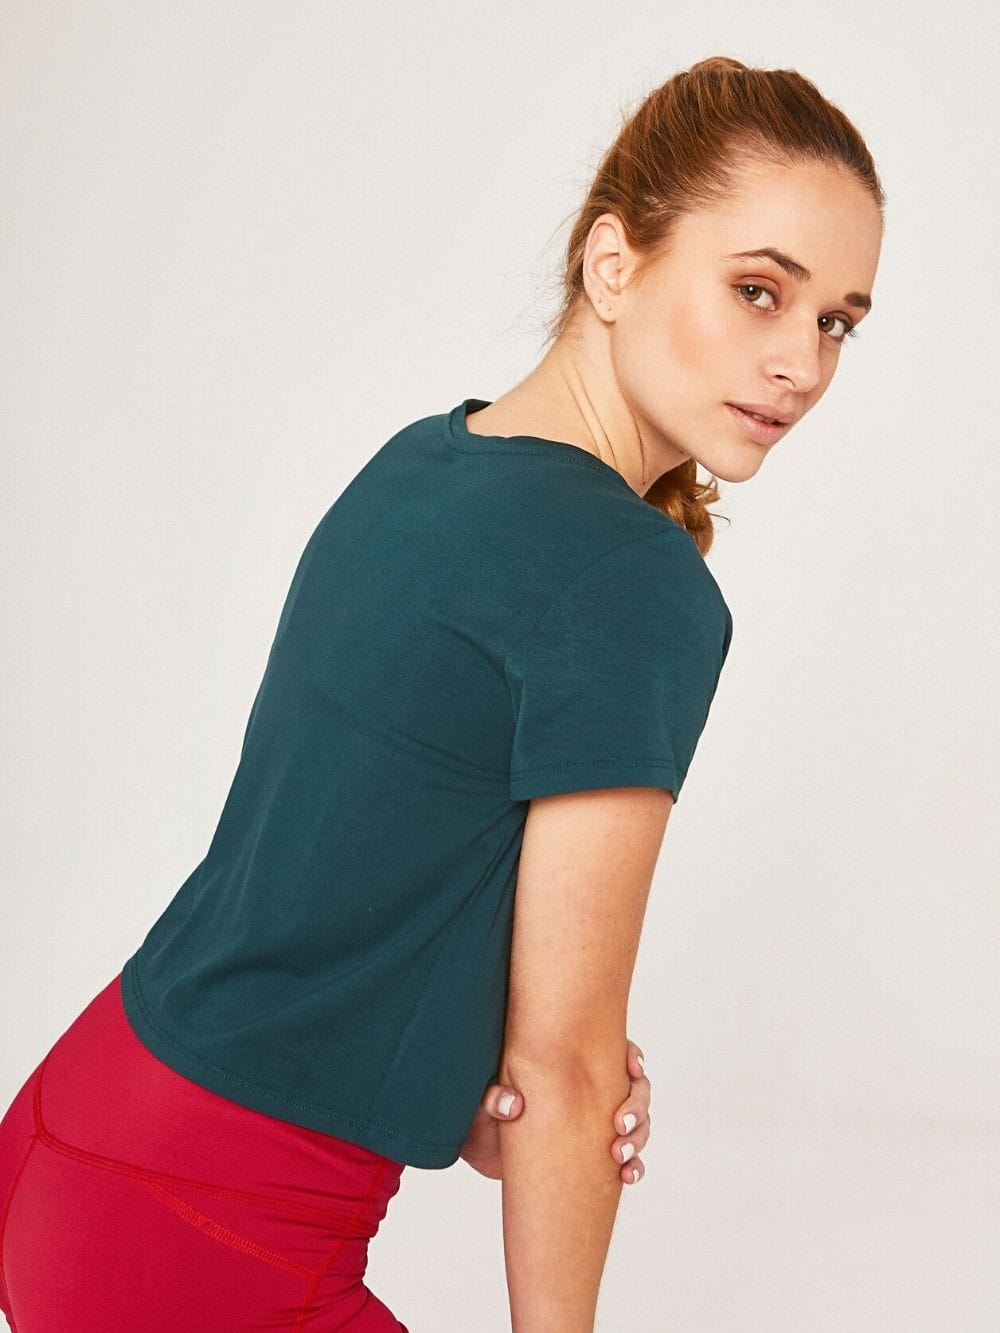 Bamboo Sustainable Sport Top-Lydia